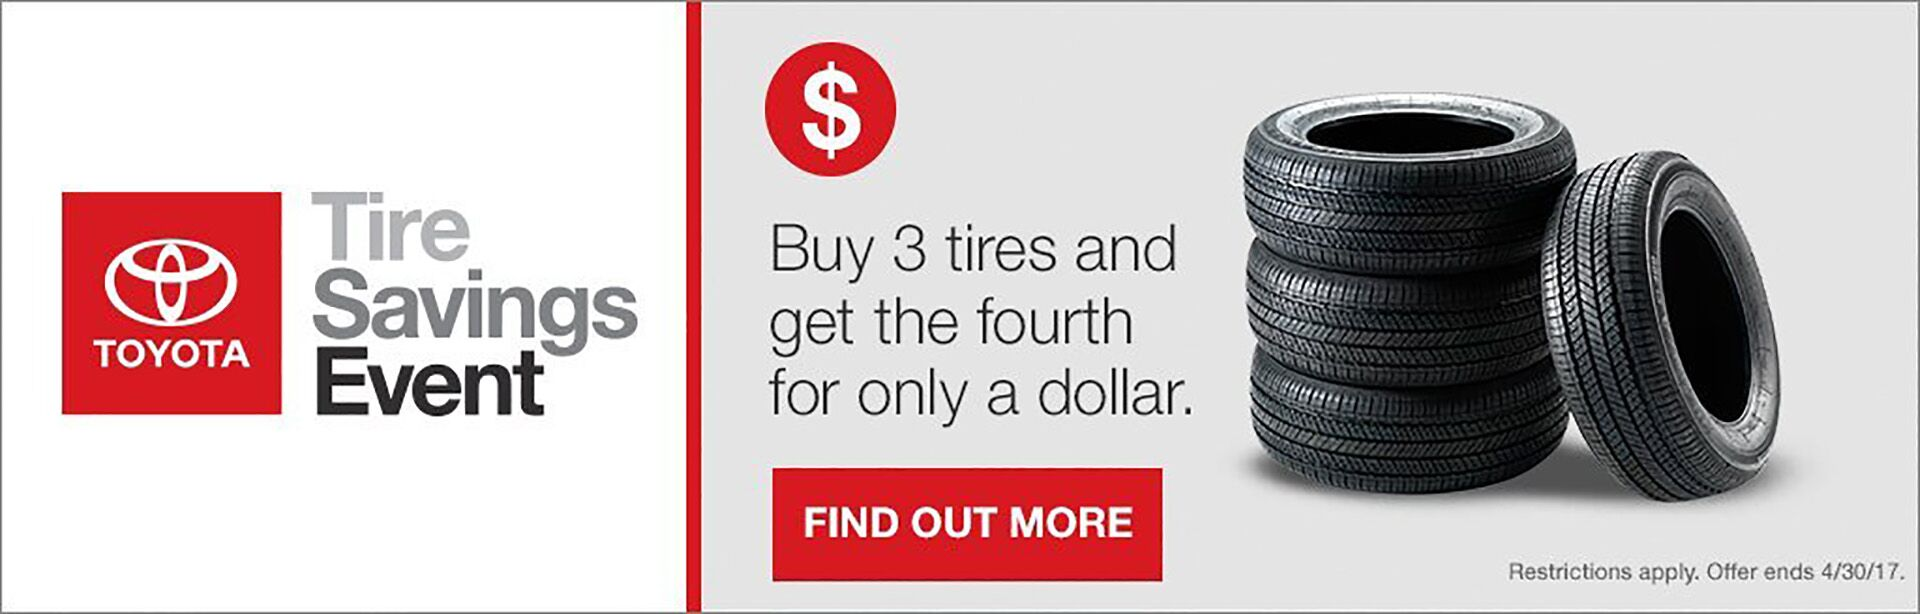 Tire Savings Event -- Buy 3 get 1 for $1